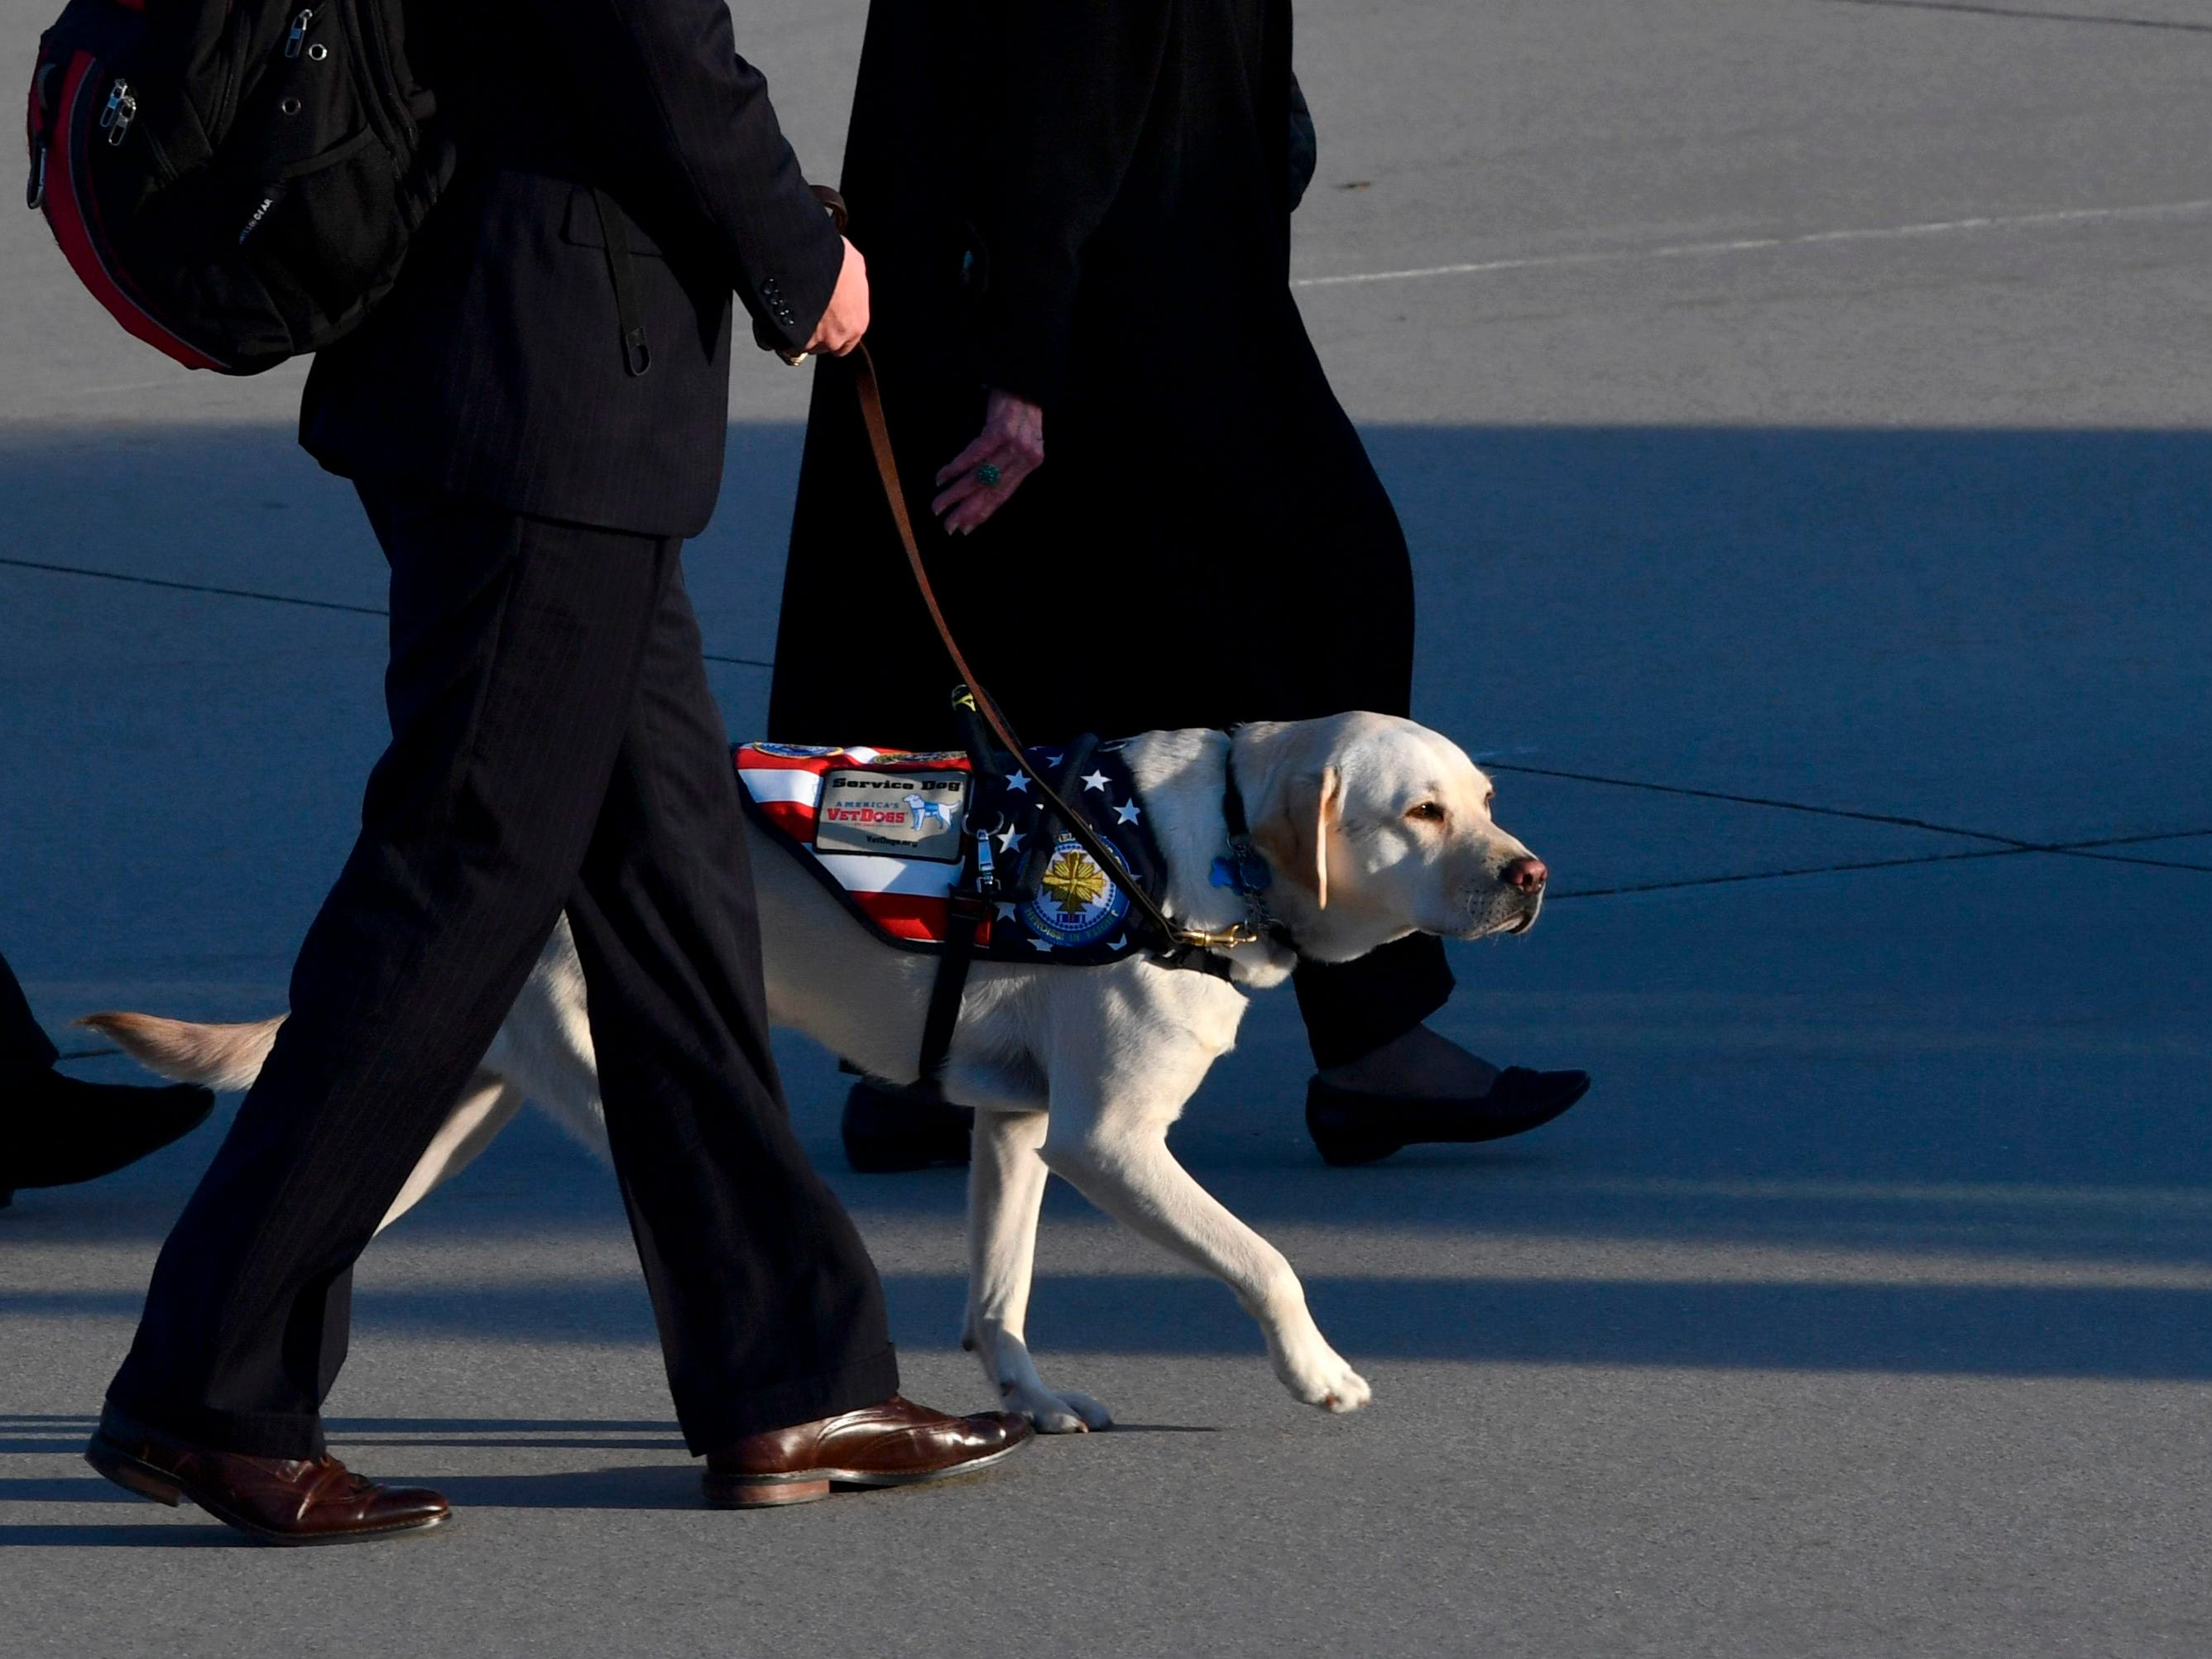 TOPSHOT - The yellow Labrador retriever Sully, the late former US president's faithful service dog, walks on the tarmac after the flag-draped casket of former President George H.W. Bush was carried by a joint services military honor guard to a hearse at Joint Base Andrews, Maryland, on December 3, 2018. (Photo by Nicholas Kamm / AFP)NICHOLAS KAMM/AFP/Getty Images ORIG FILE ID: AFP_1BB6O7